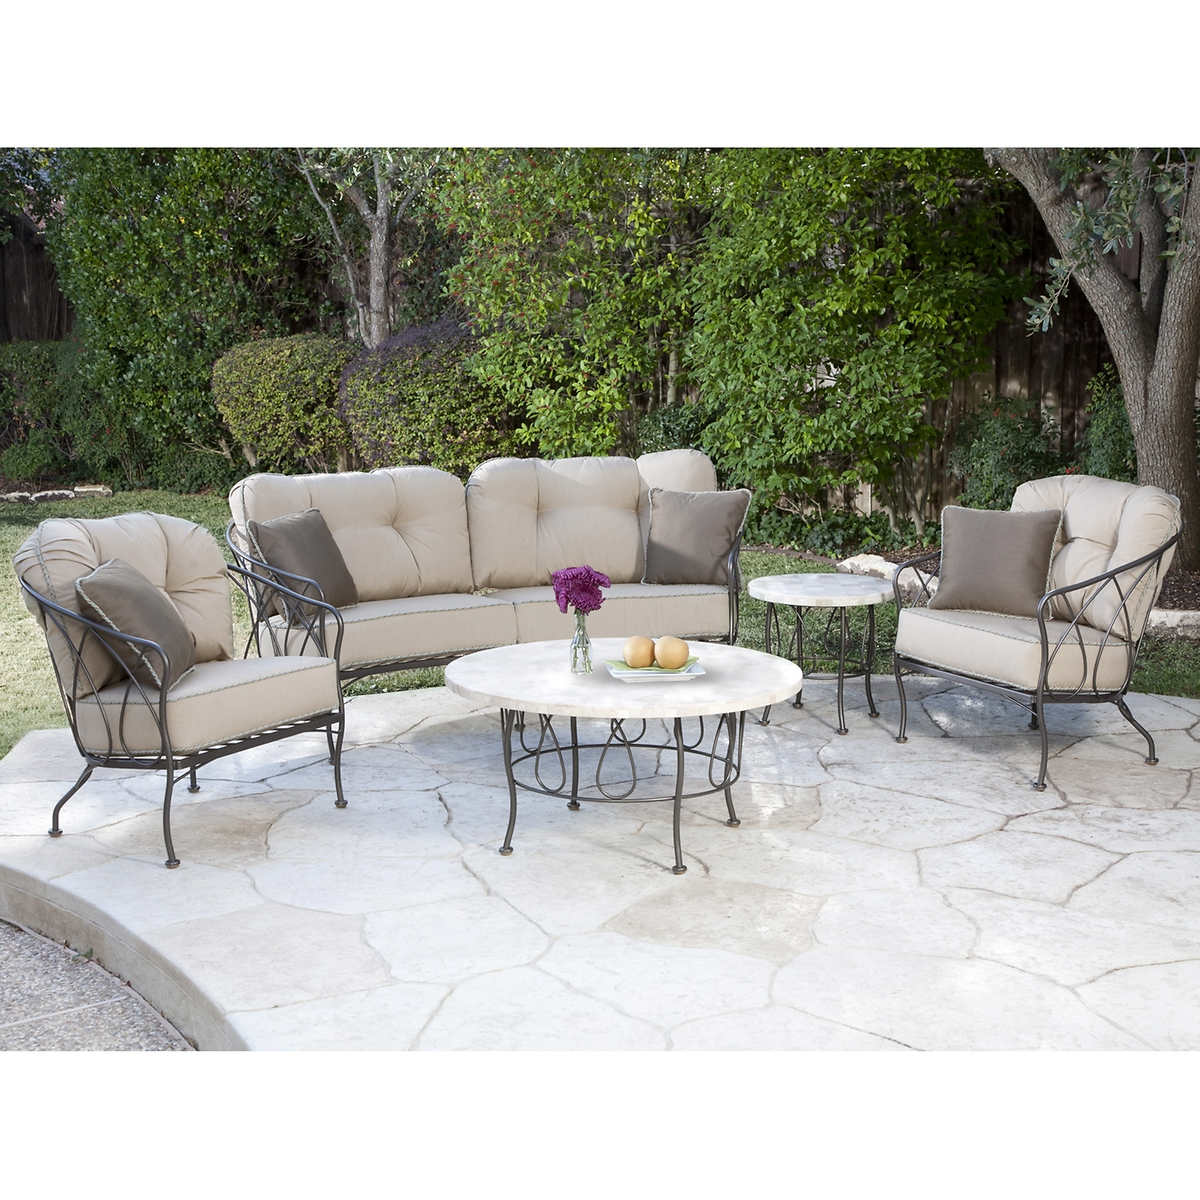 Furniture swivel and tub chairs dori fabric swivel cuddle chair - Medina 5 Piece Patio Cuddle Chat Collection